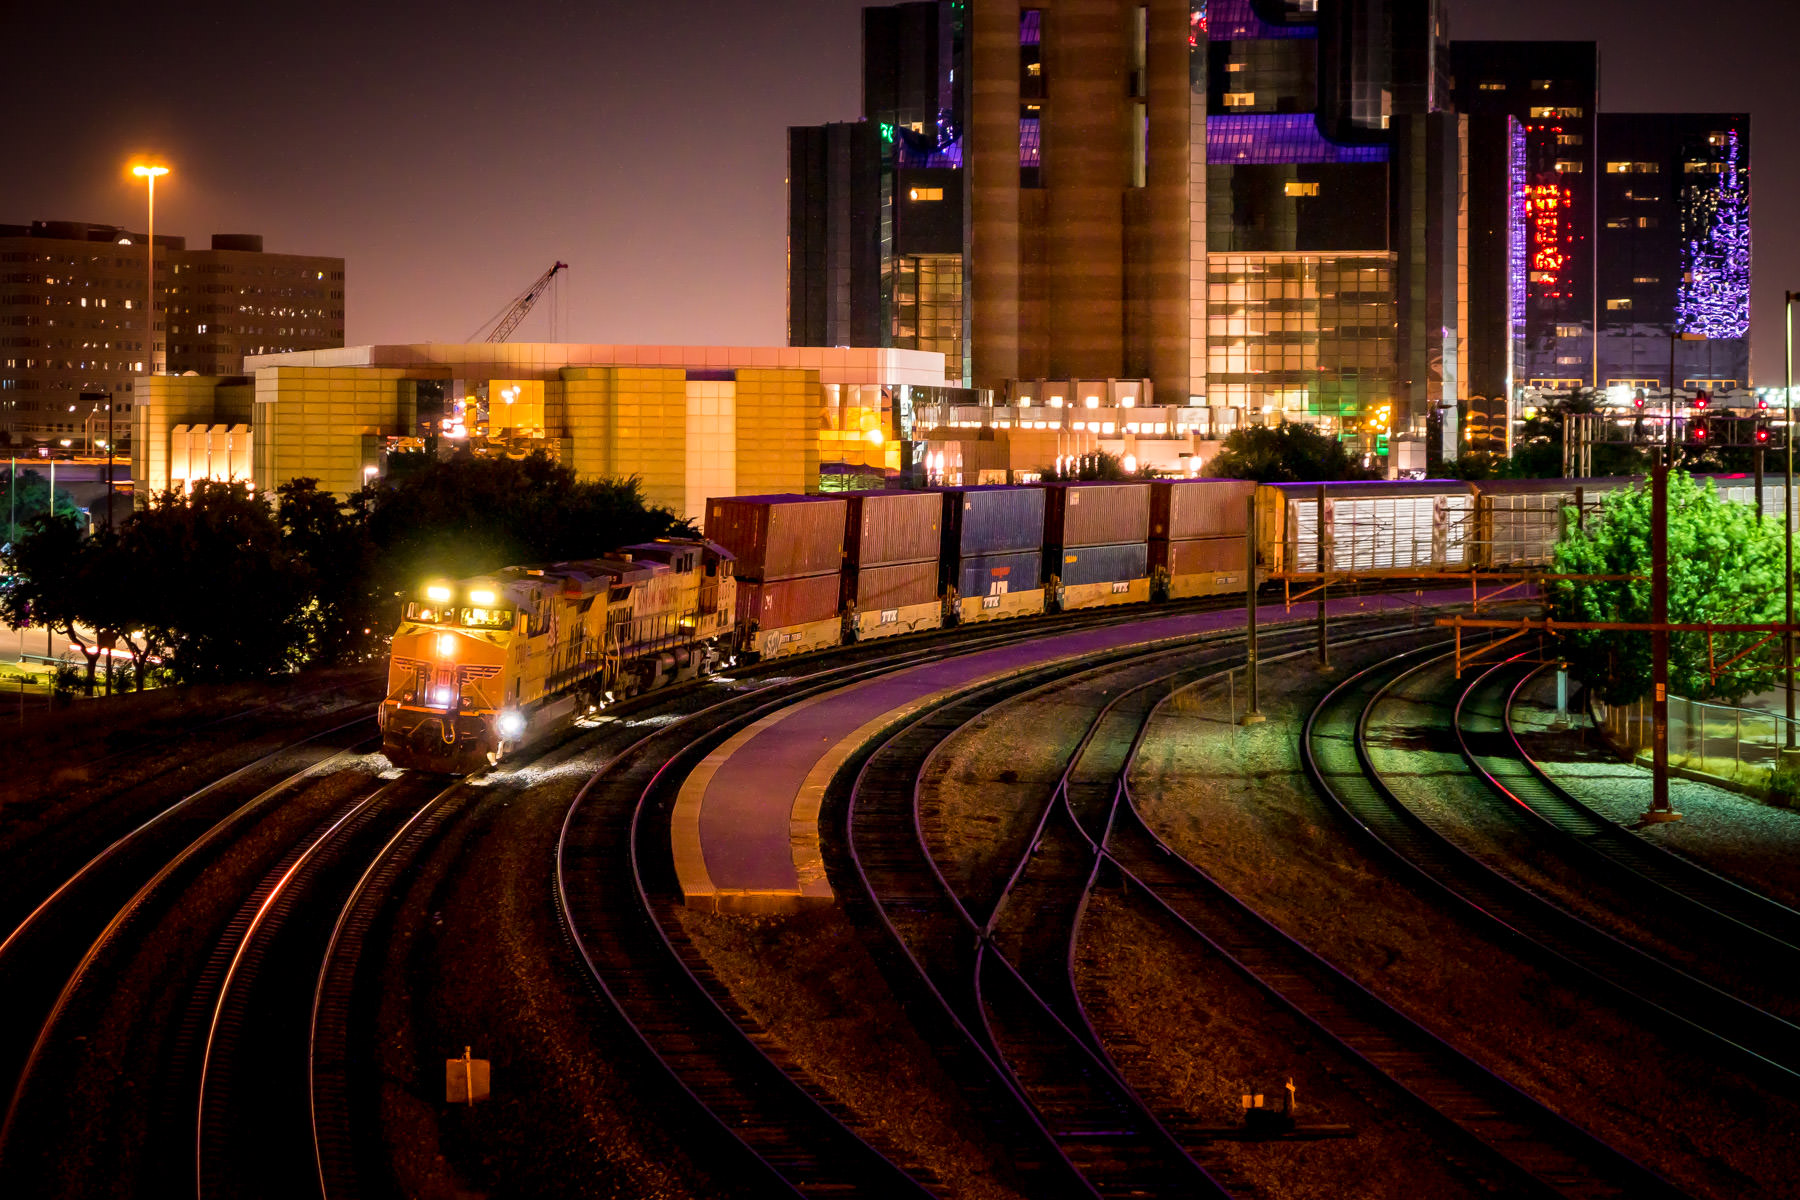 A Union Pacific train travels the rails near the Dallas Convention Center and Reunion Tower.